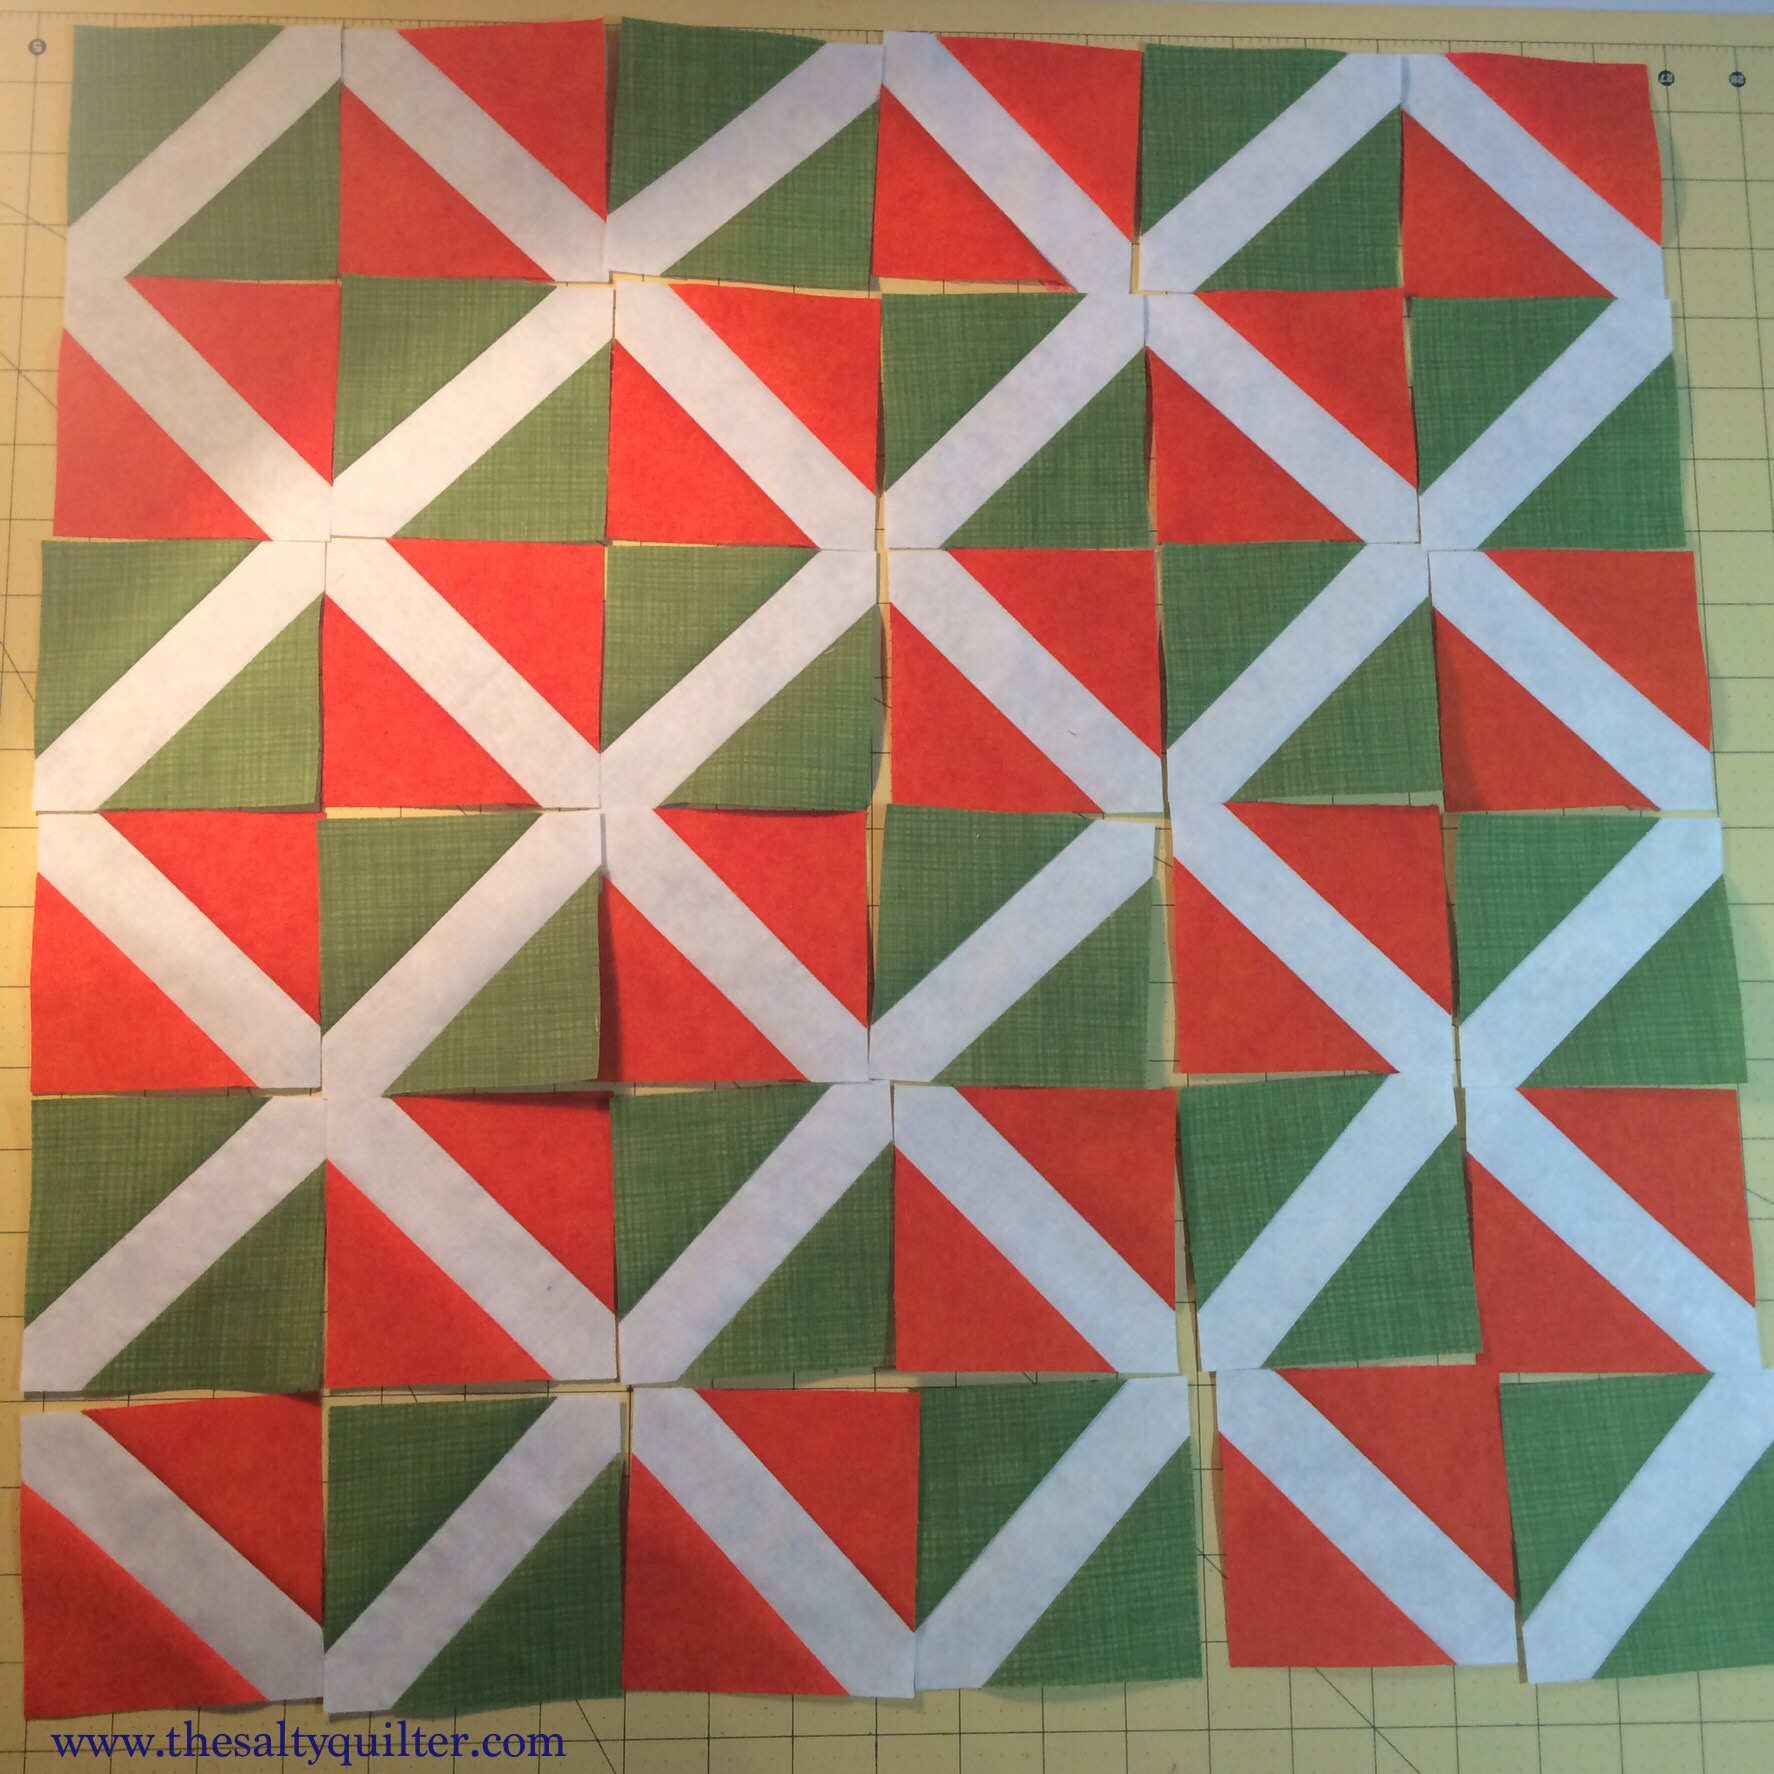 Low Waste Signature Block - lattice layout